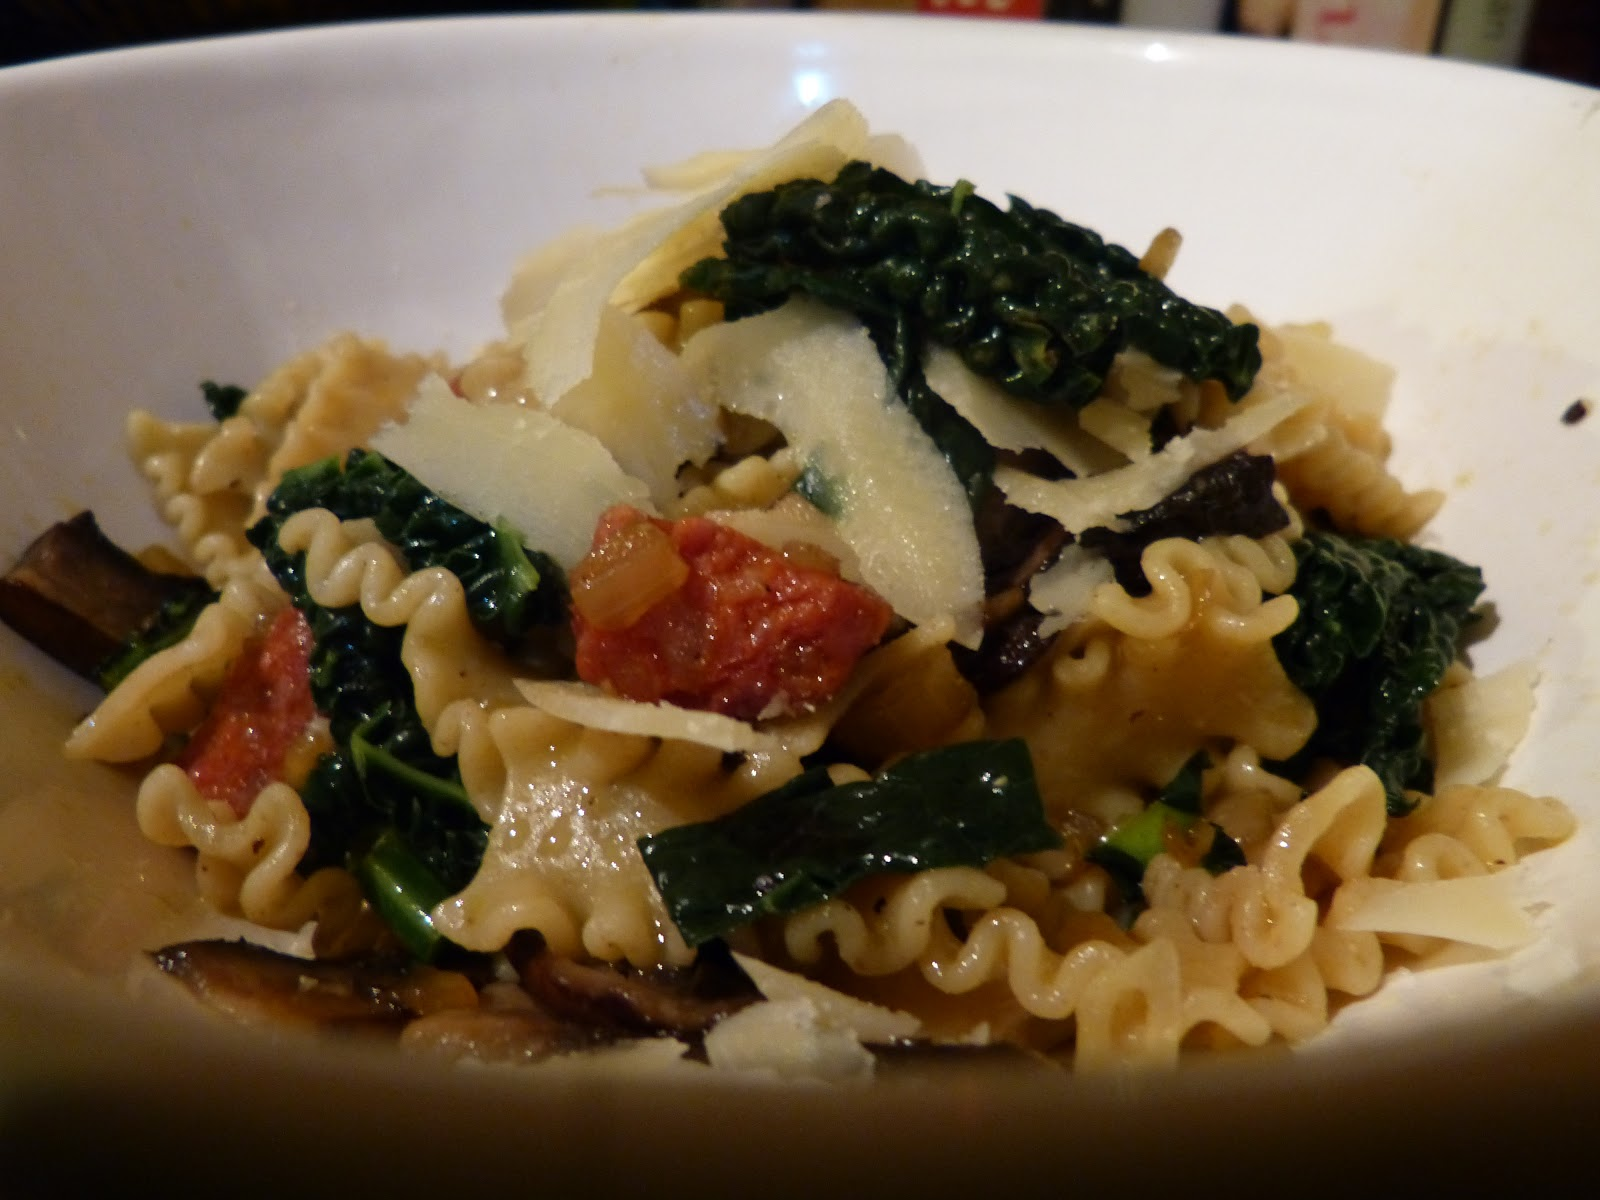 North West Nosh: Chorizo, kale and mushroom pasta